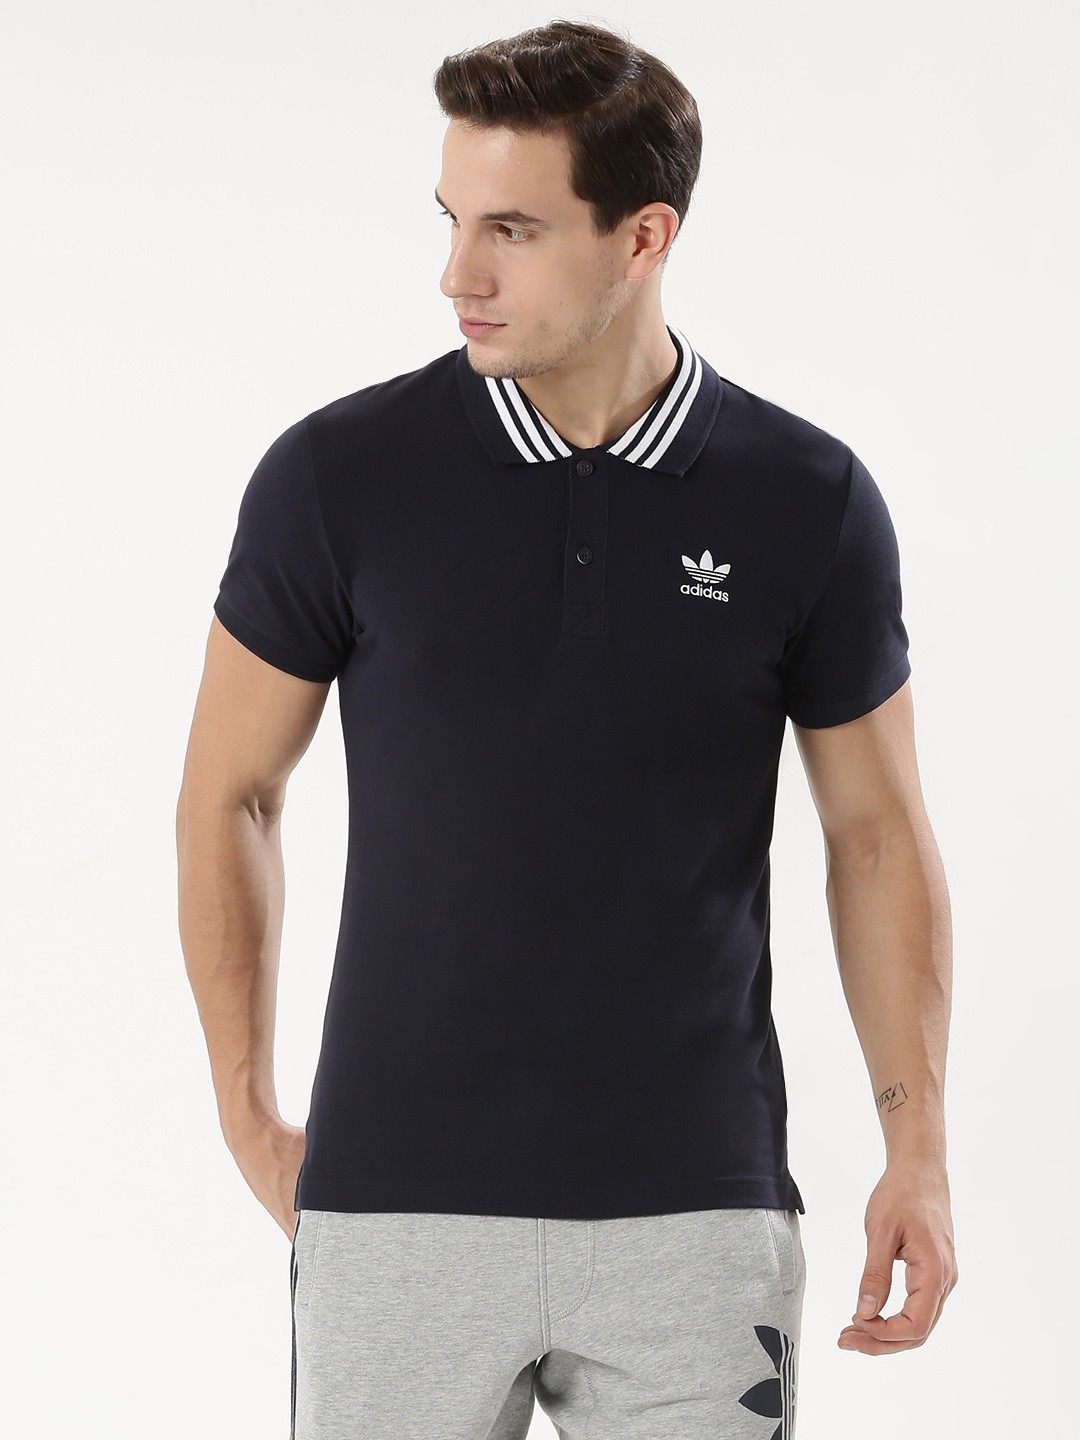 Adidas Originals Tipped Polo Shirt Navy